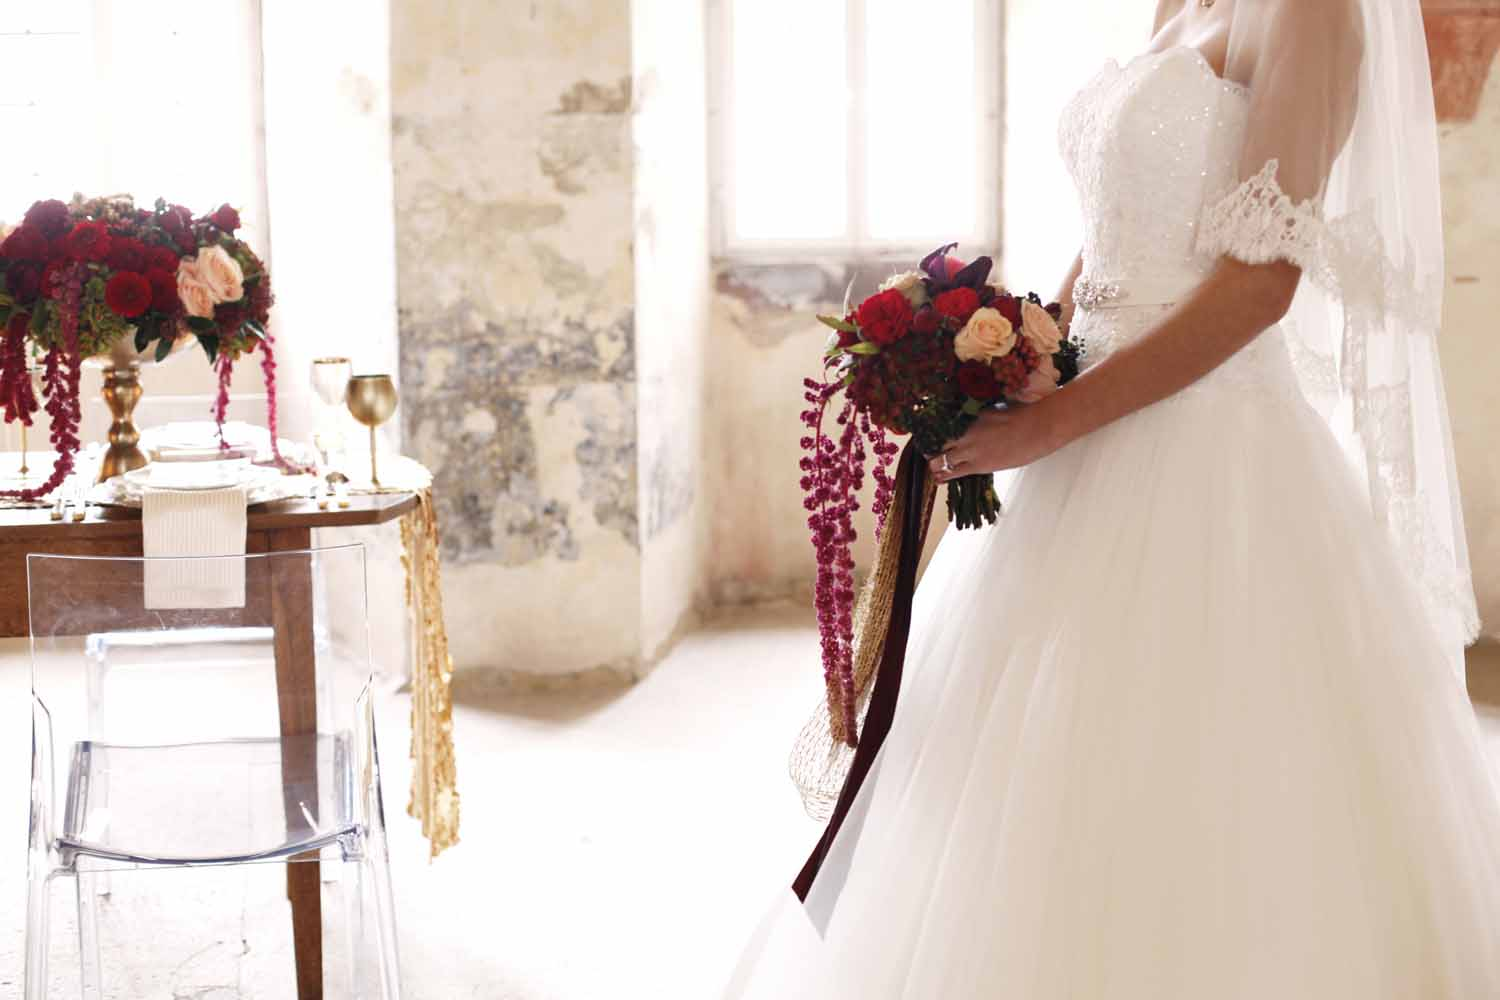 bridal bouquet with trailing ribbons and trailing red amaranthus for Wedding Style Shoot in Kloster Eberbach, Germany, designed by Flora Nova Design, Seattle